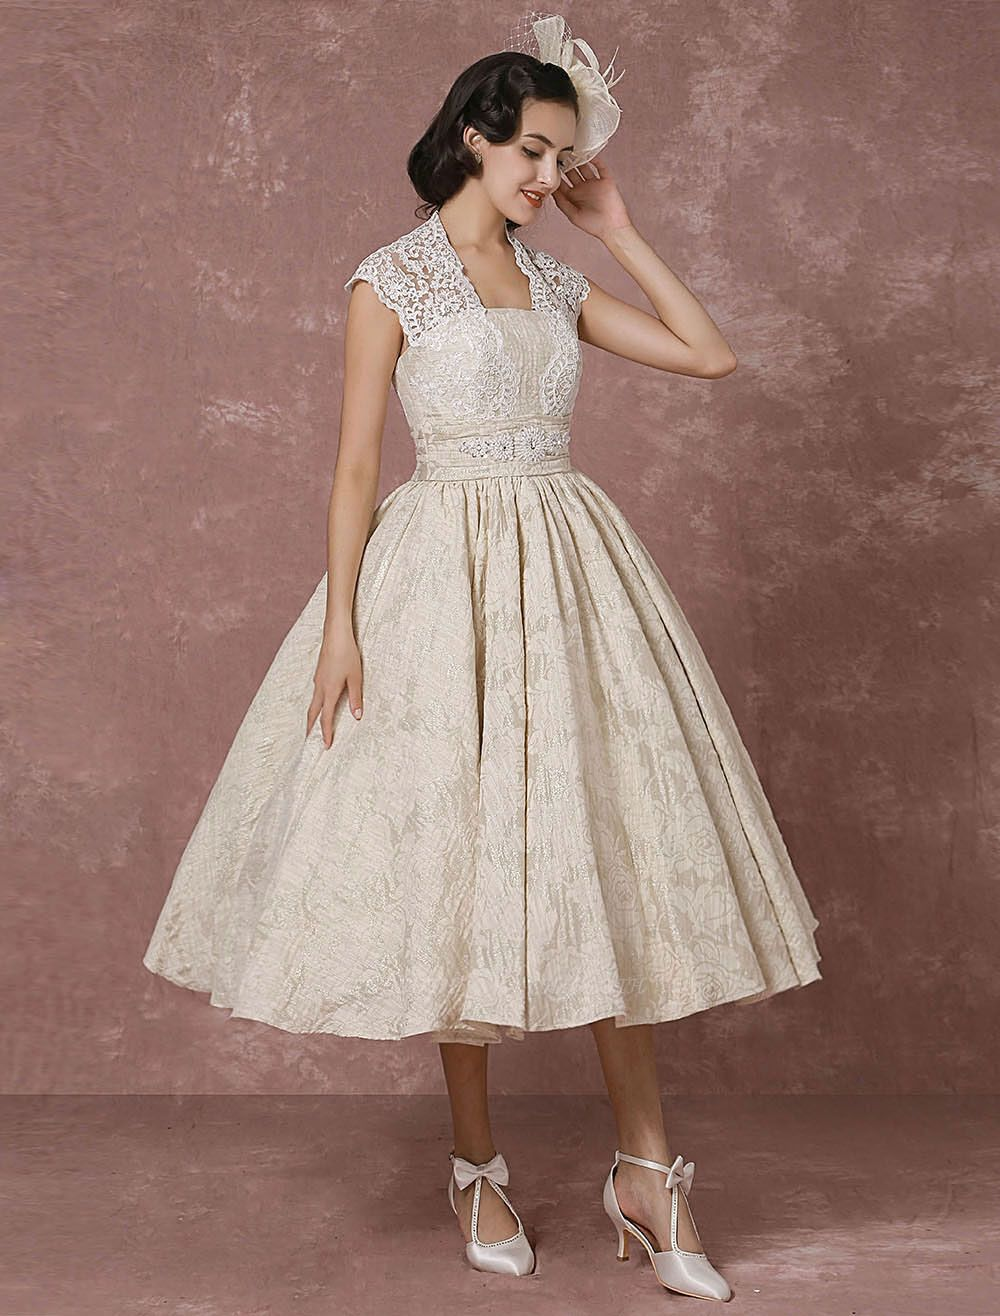 Short Wedding Dress Lace Champagne Vintage Bridal Dress Ball Gown Beading Backless Tea-Length Bridal Gown With Sash Exclusive